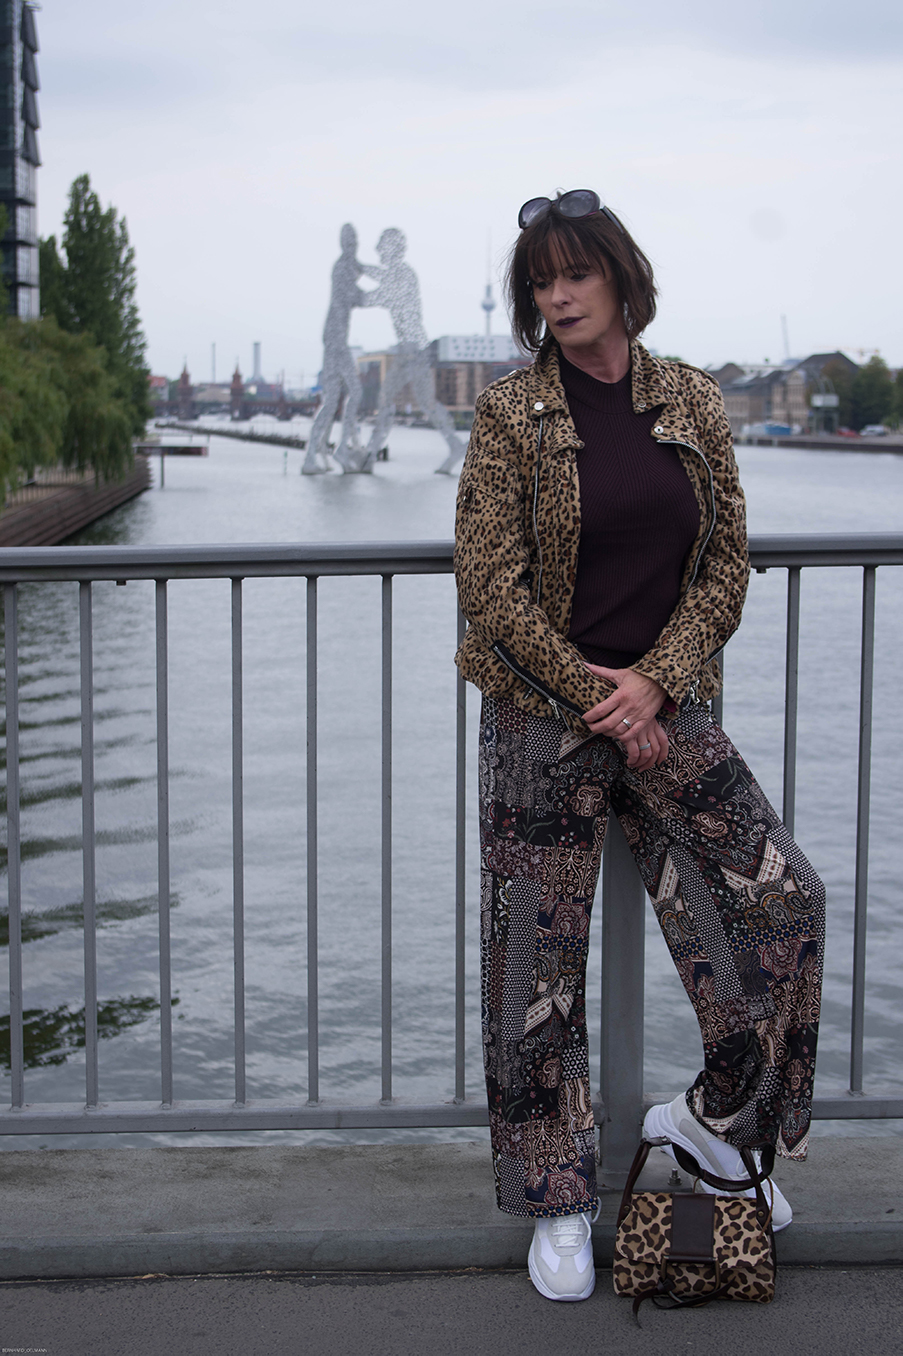 Just-take-a-look Berlin -Herbst-Trends Outfit Treptow-13.1